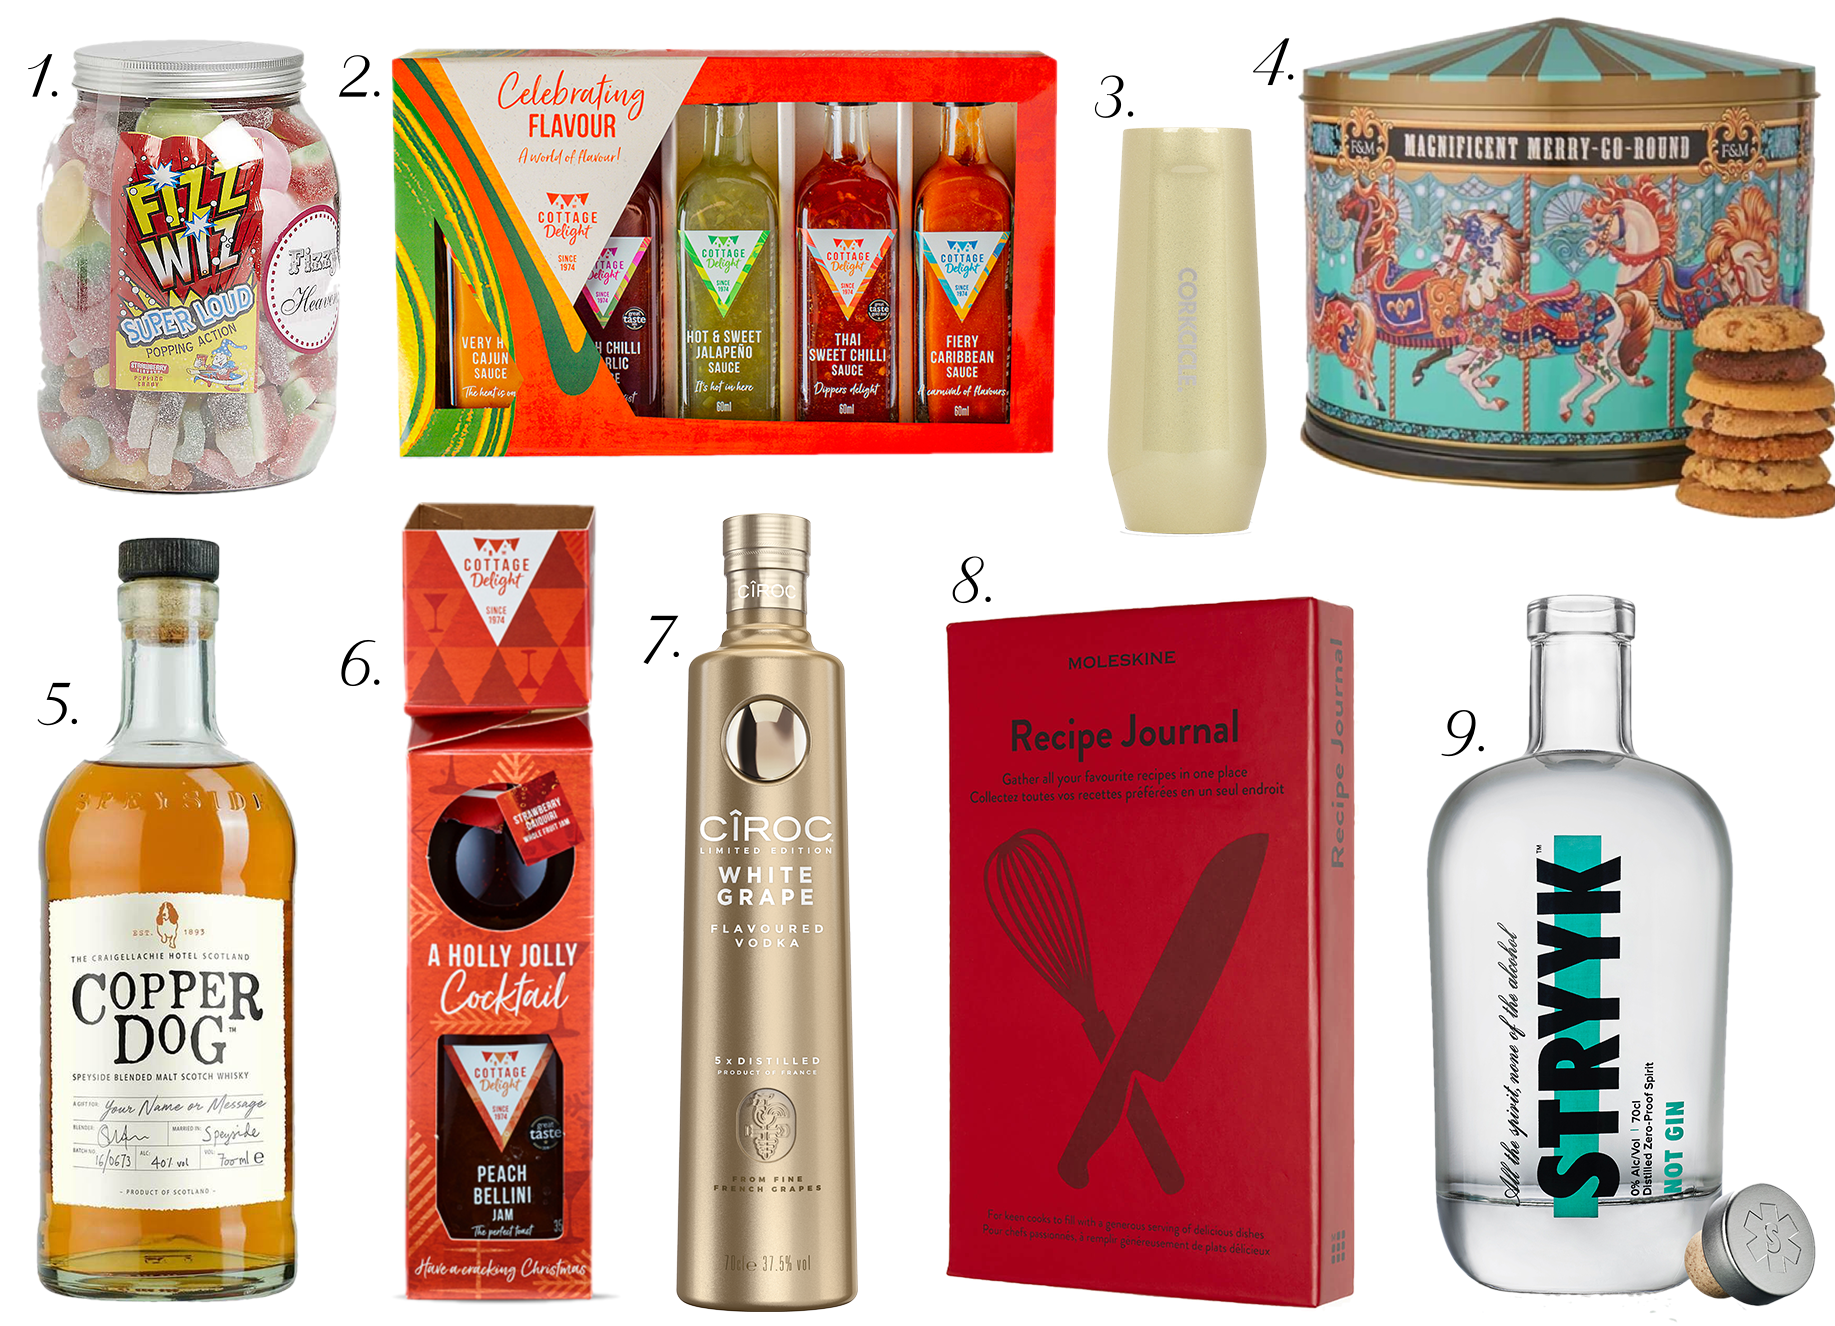 Foodie Gift Ideas Christmas Gift Guide 2019 - The LDN Diaries